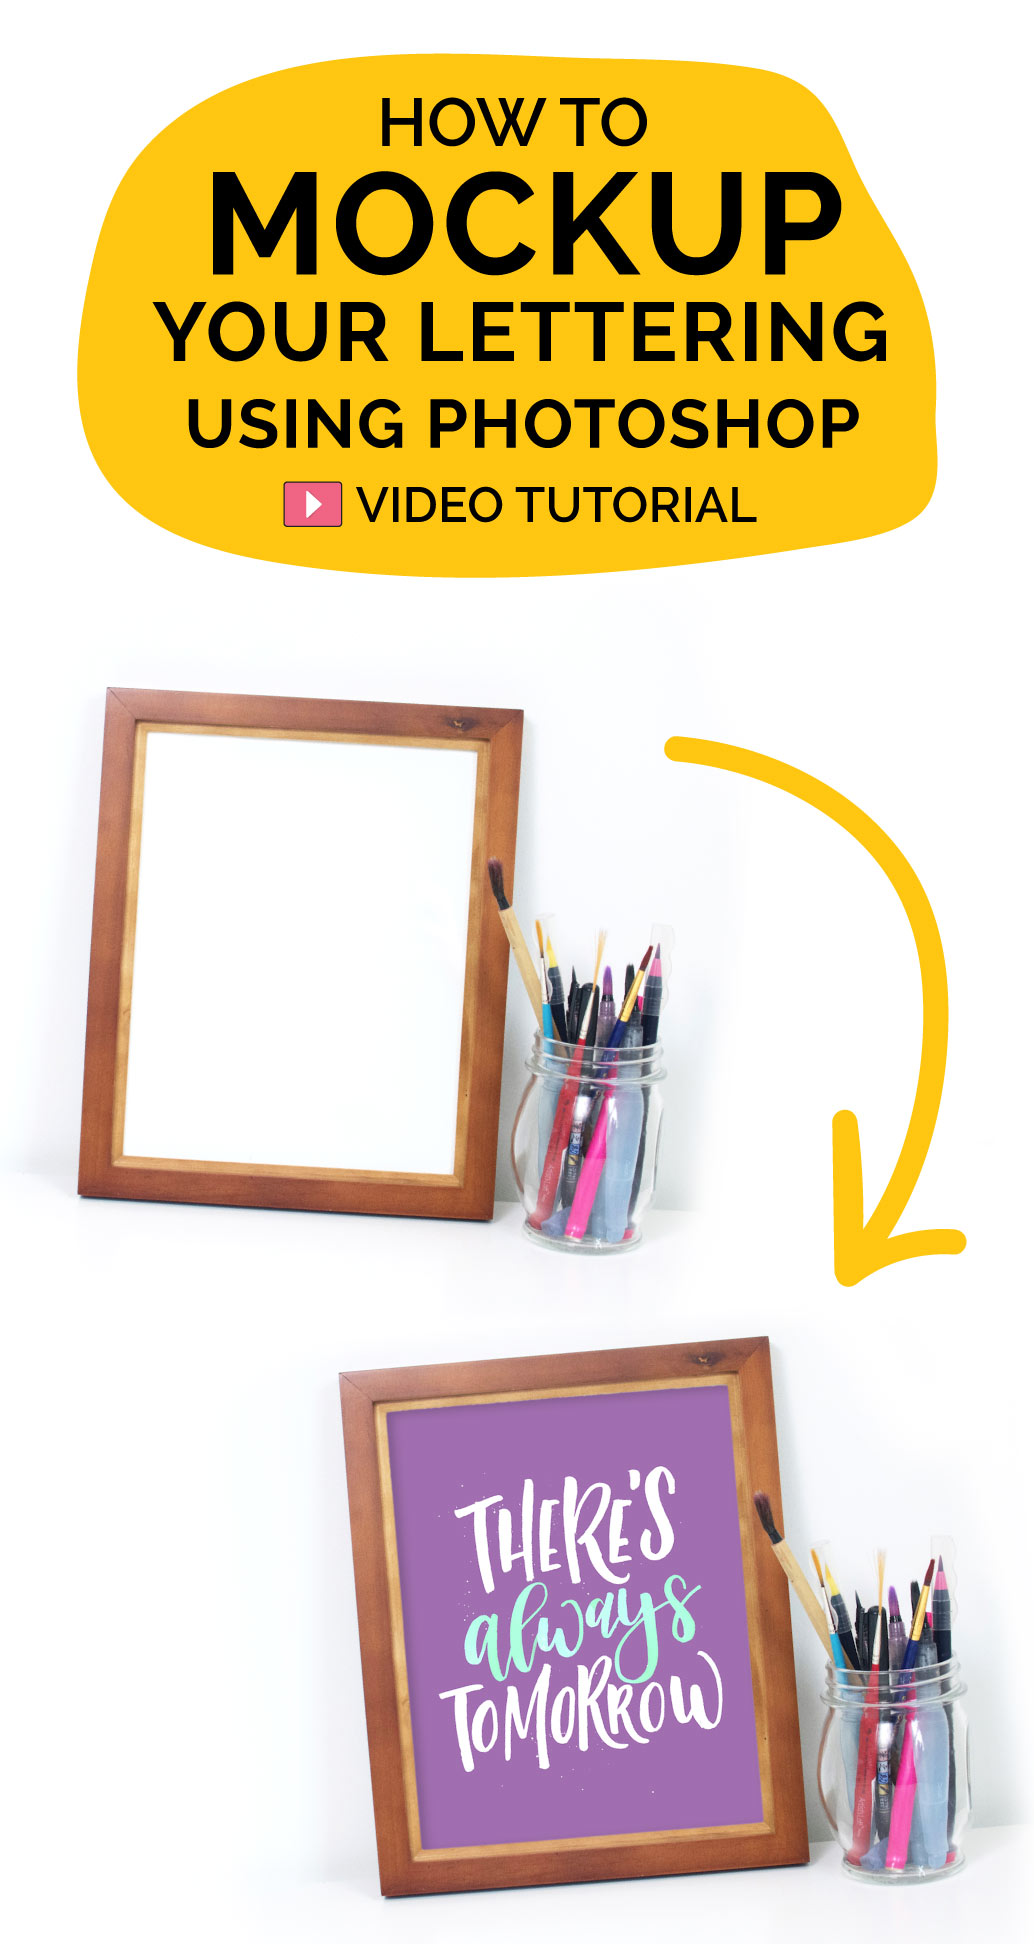 A video tutorial on how to mockup your lettering art inside of a frame. Part of the Phtoshop Course for beginners. You will need a frame and your art.